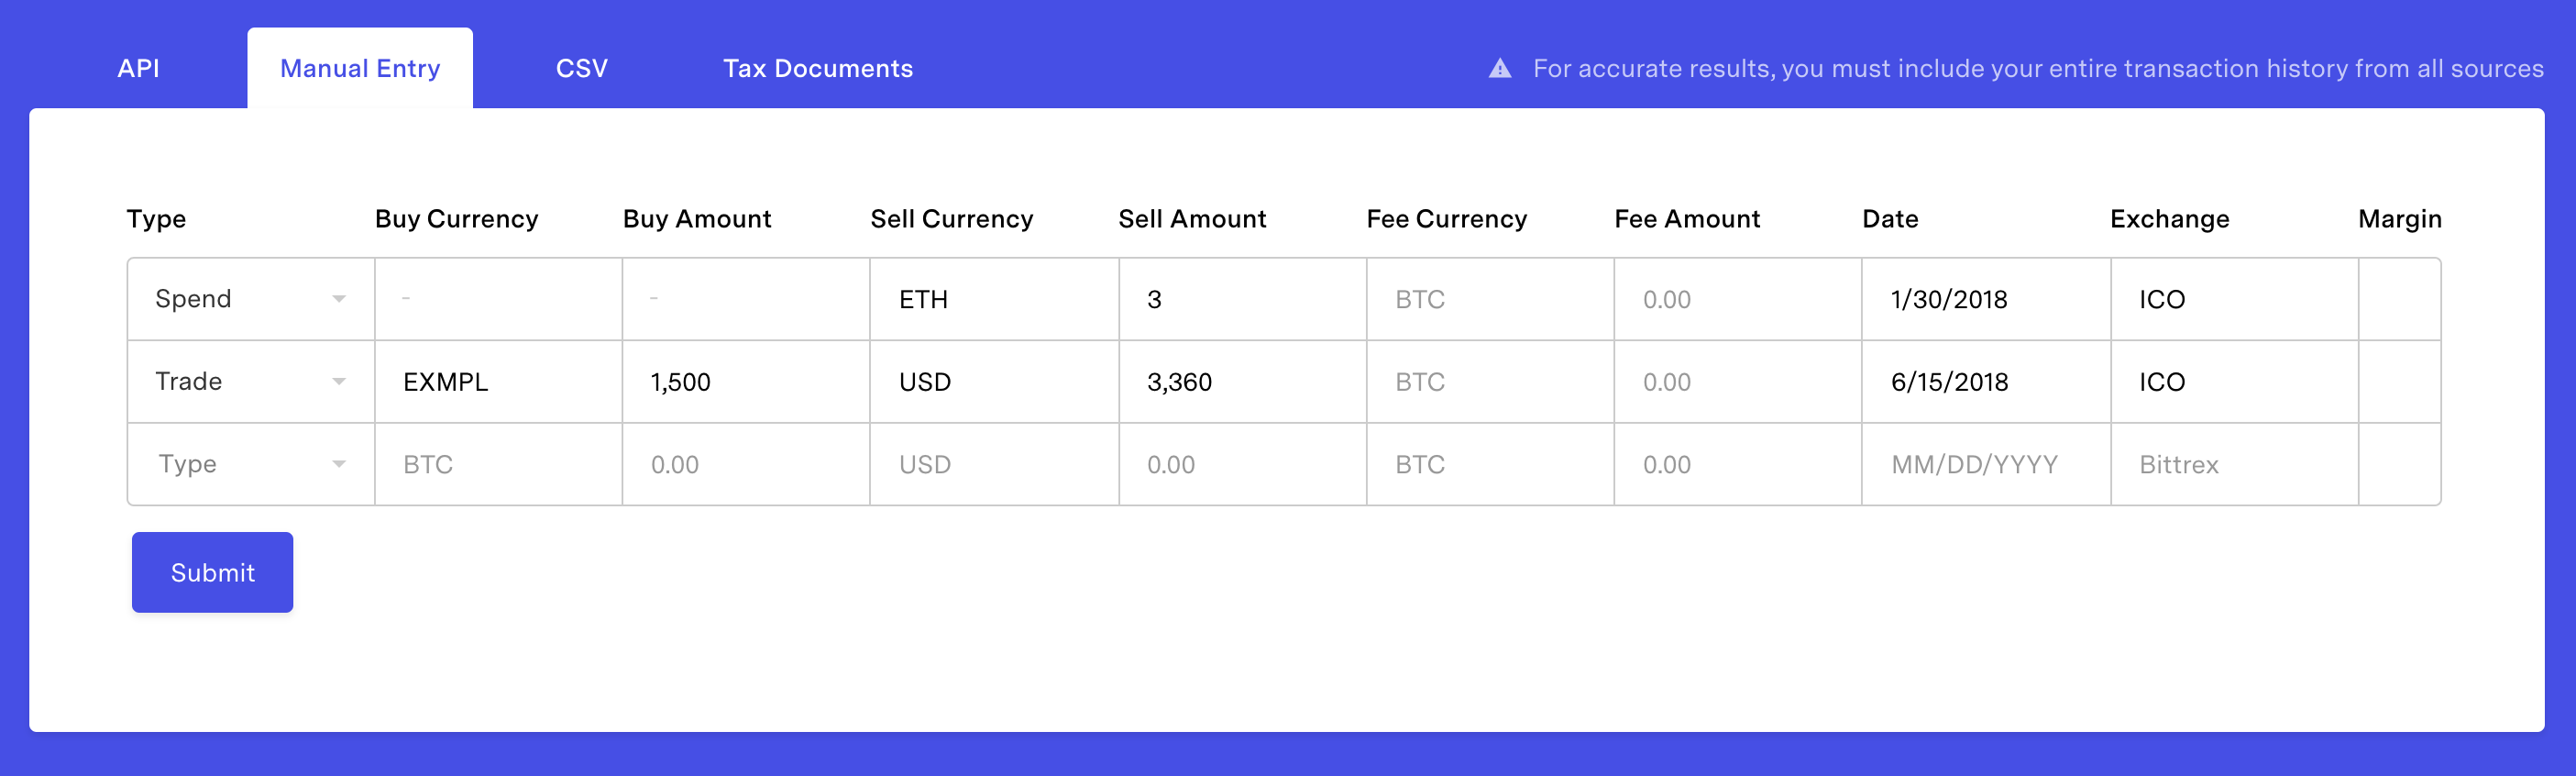 Example of entering an ICO transaction with separate dates